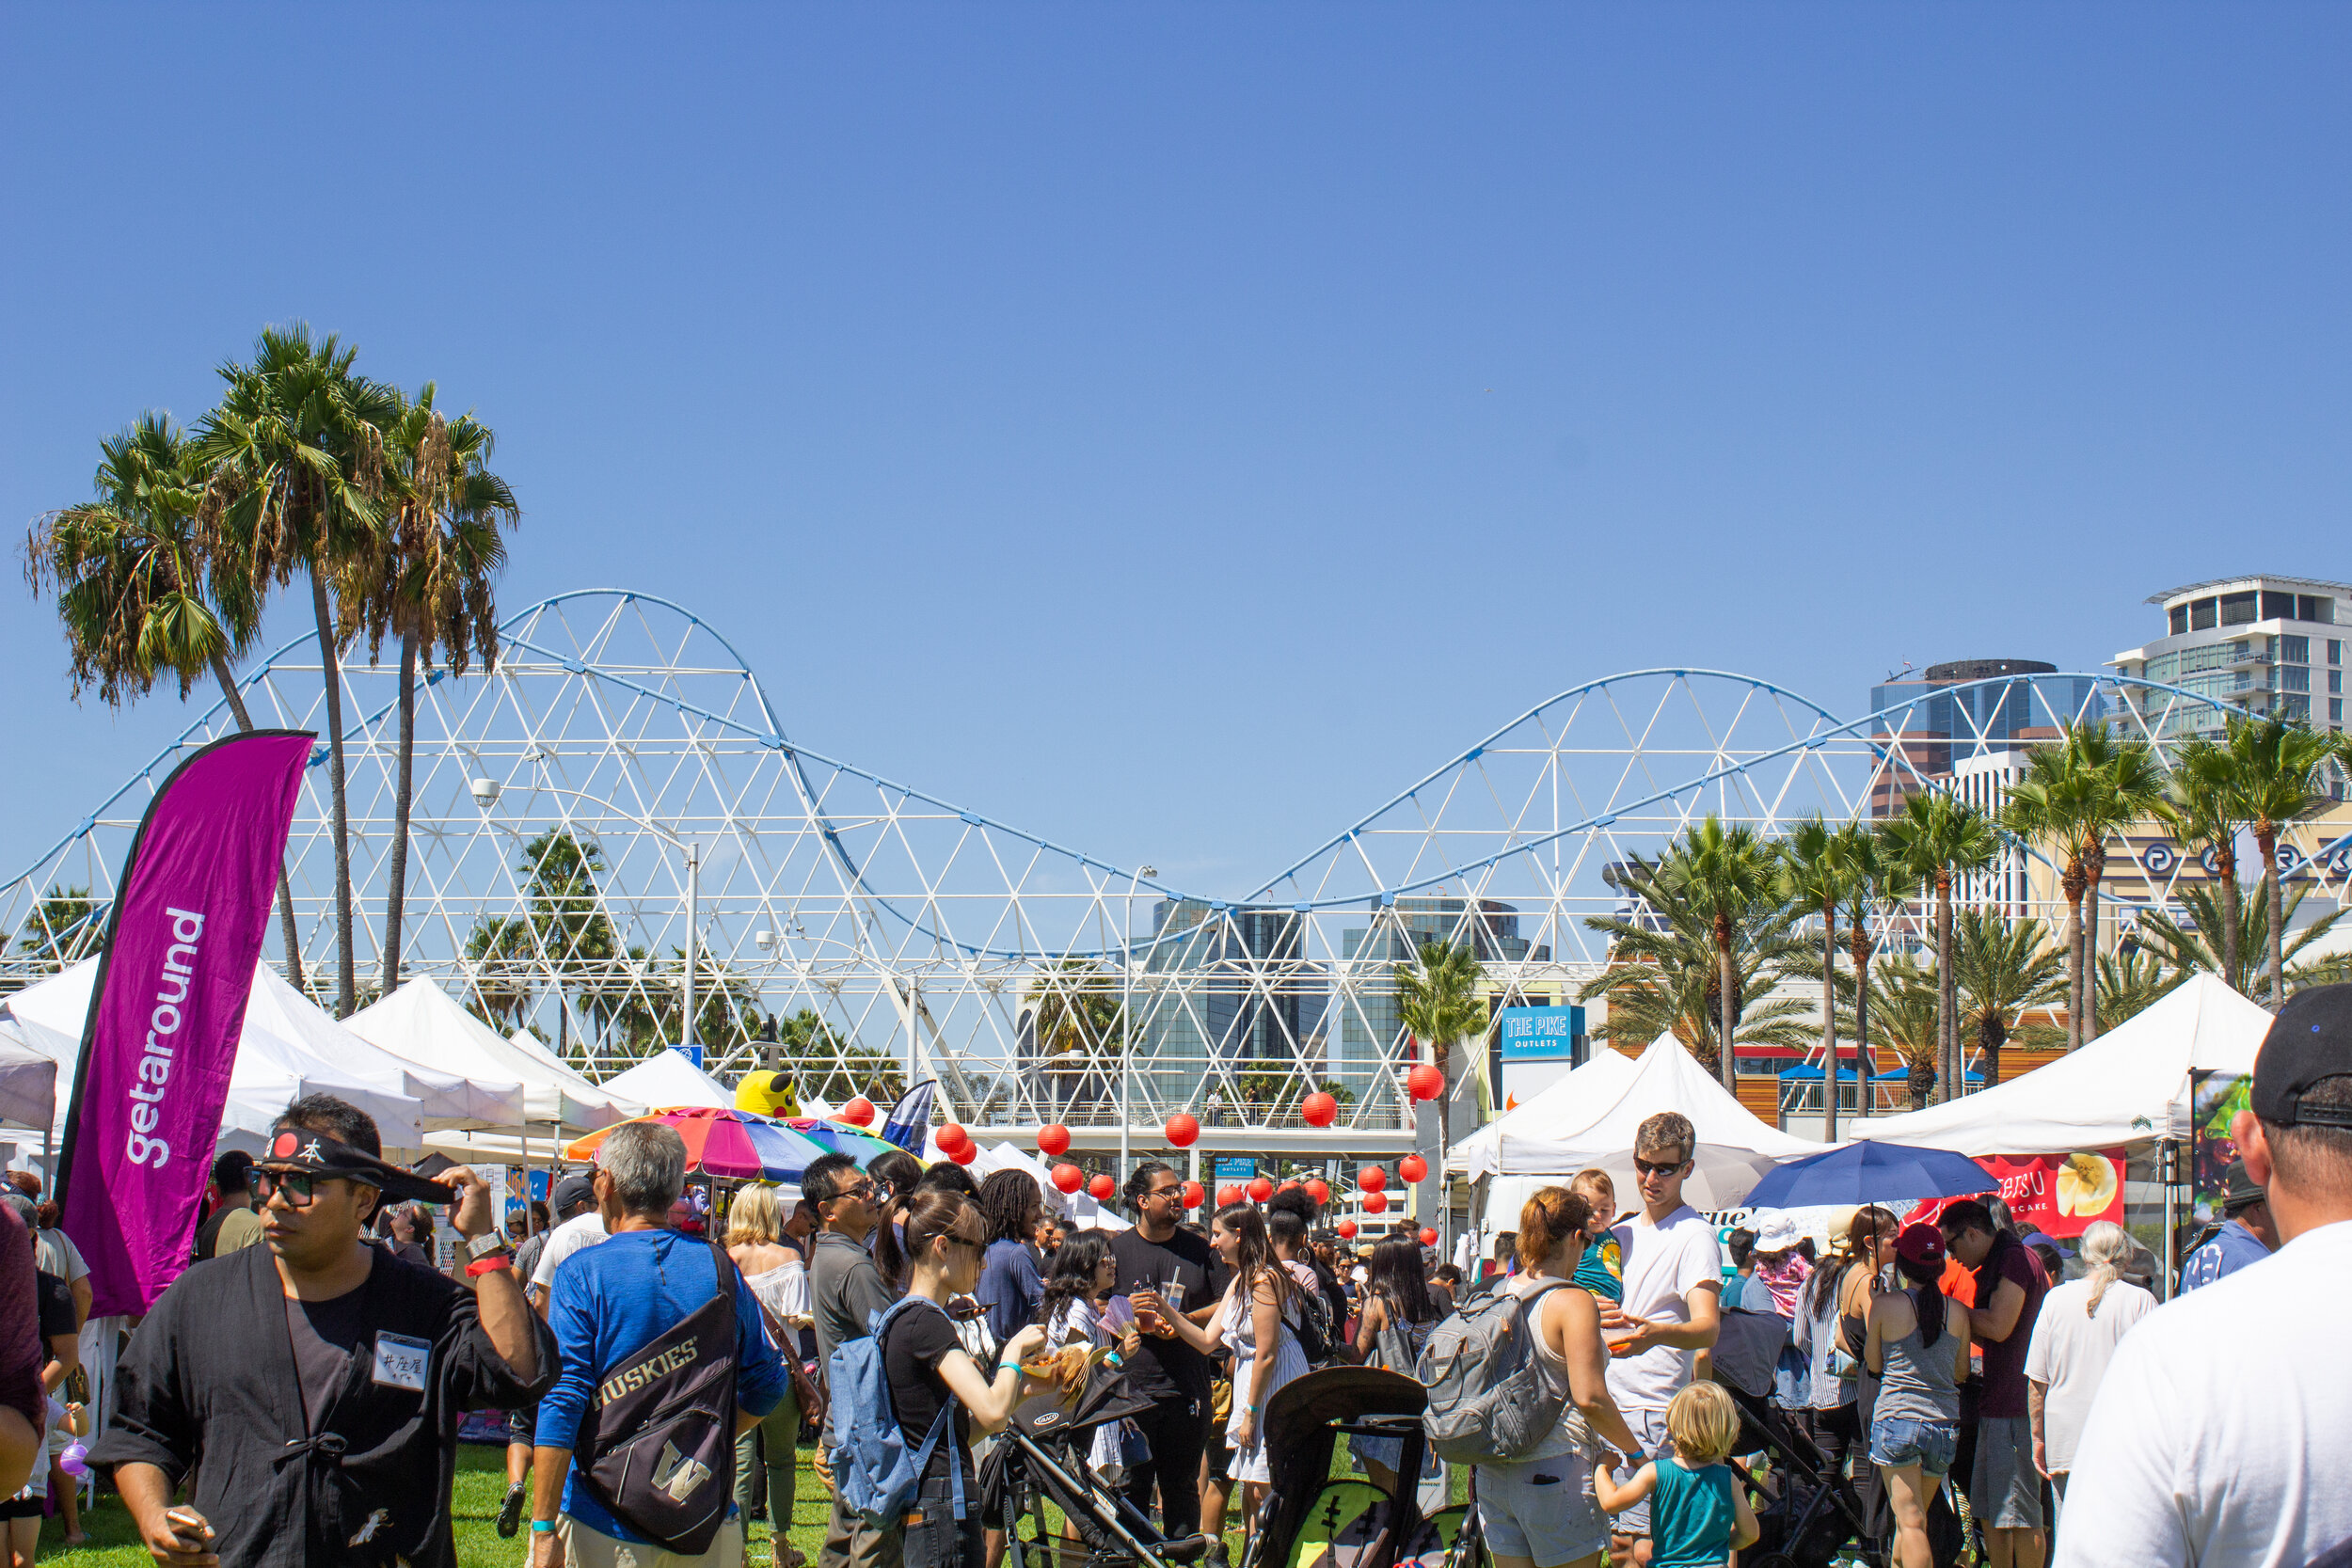 It was in the upper 80 degrees on Saturday, but it did not stop many people from attending Taste of Japan.